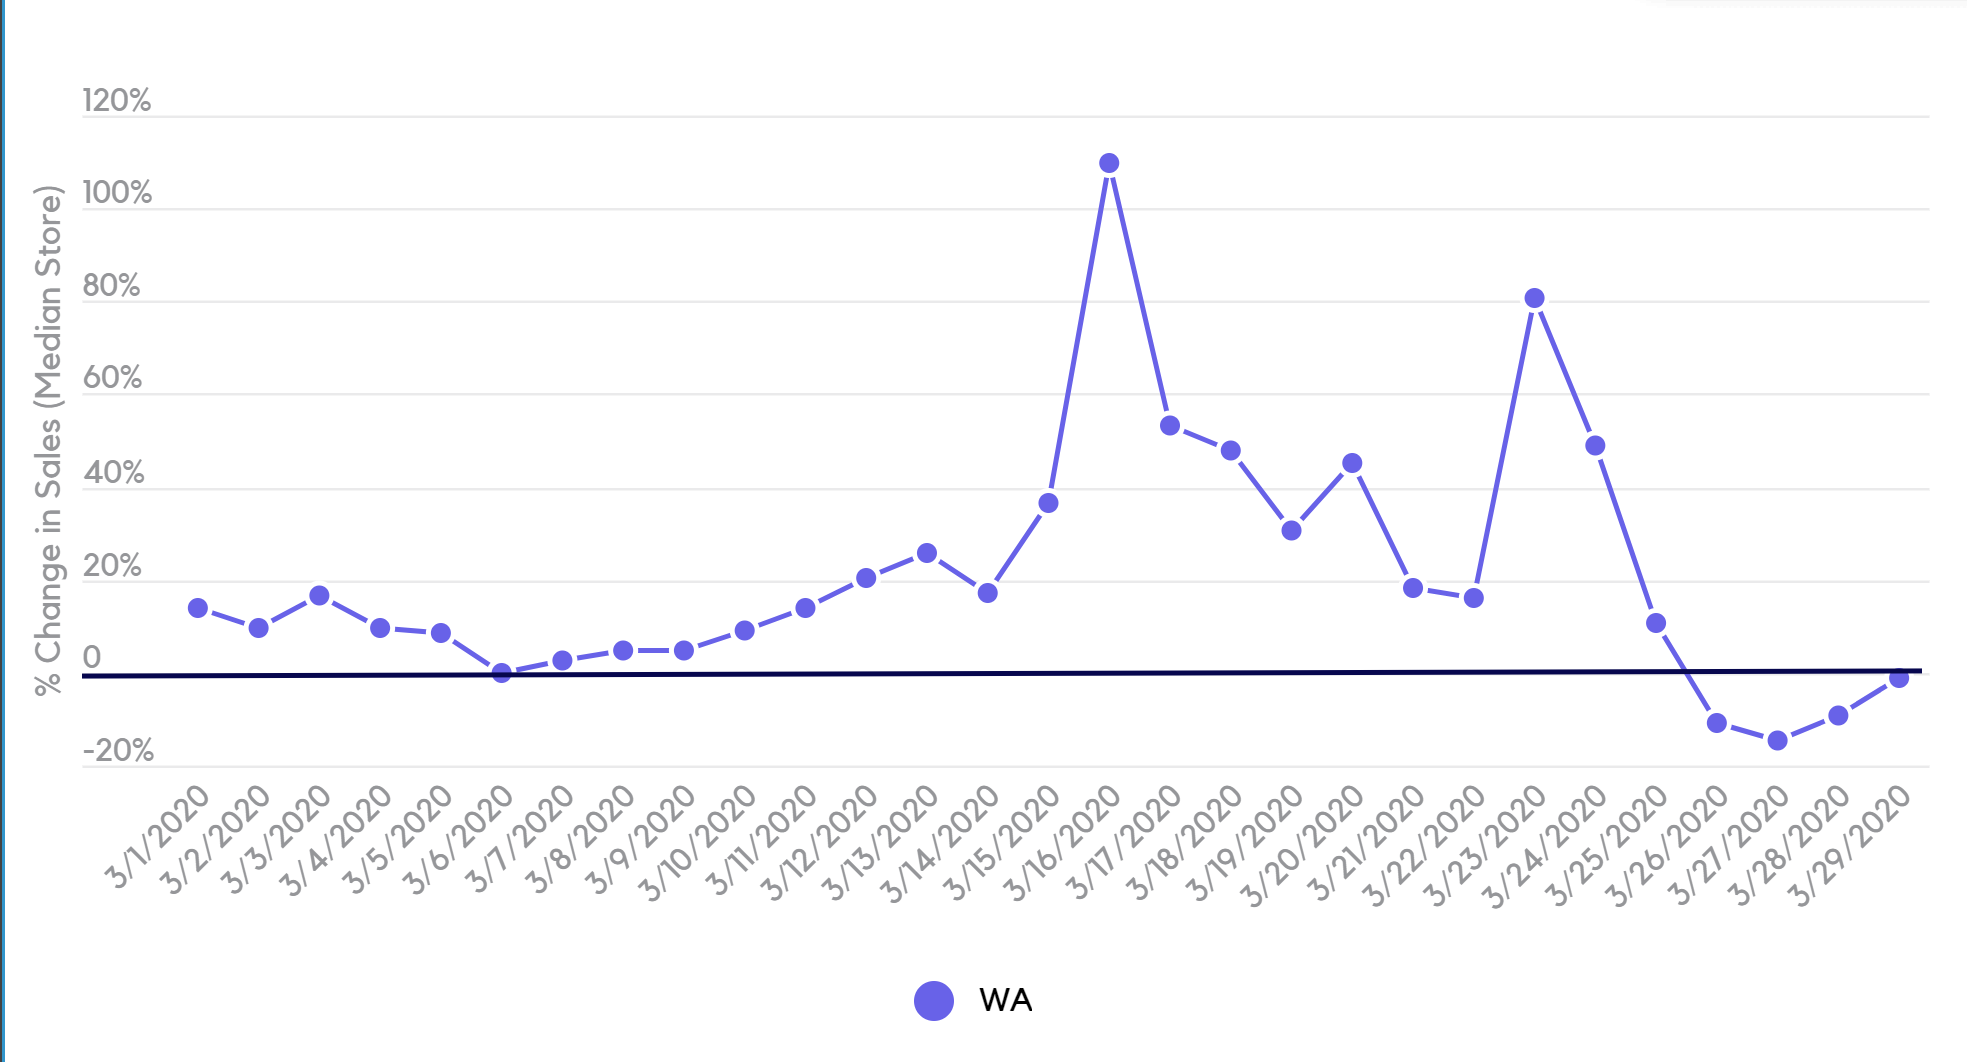 Change in cannabis sales for median stores in Washington state